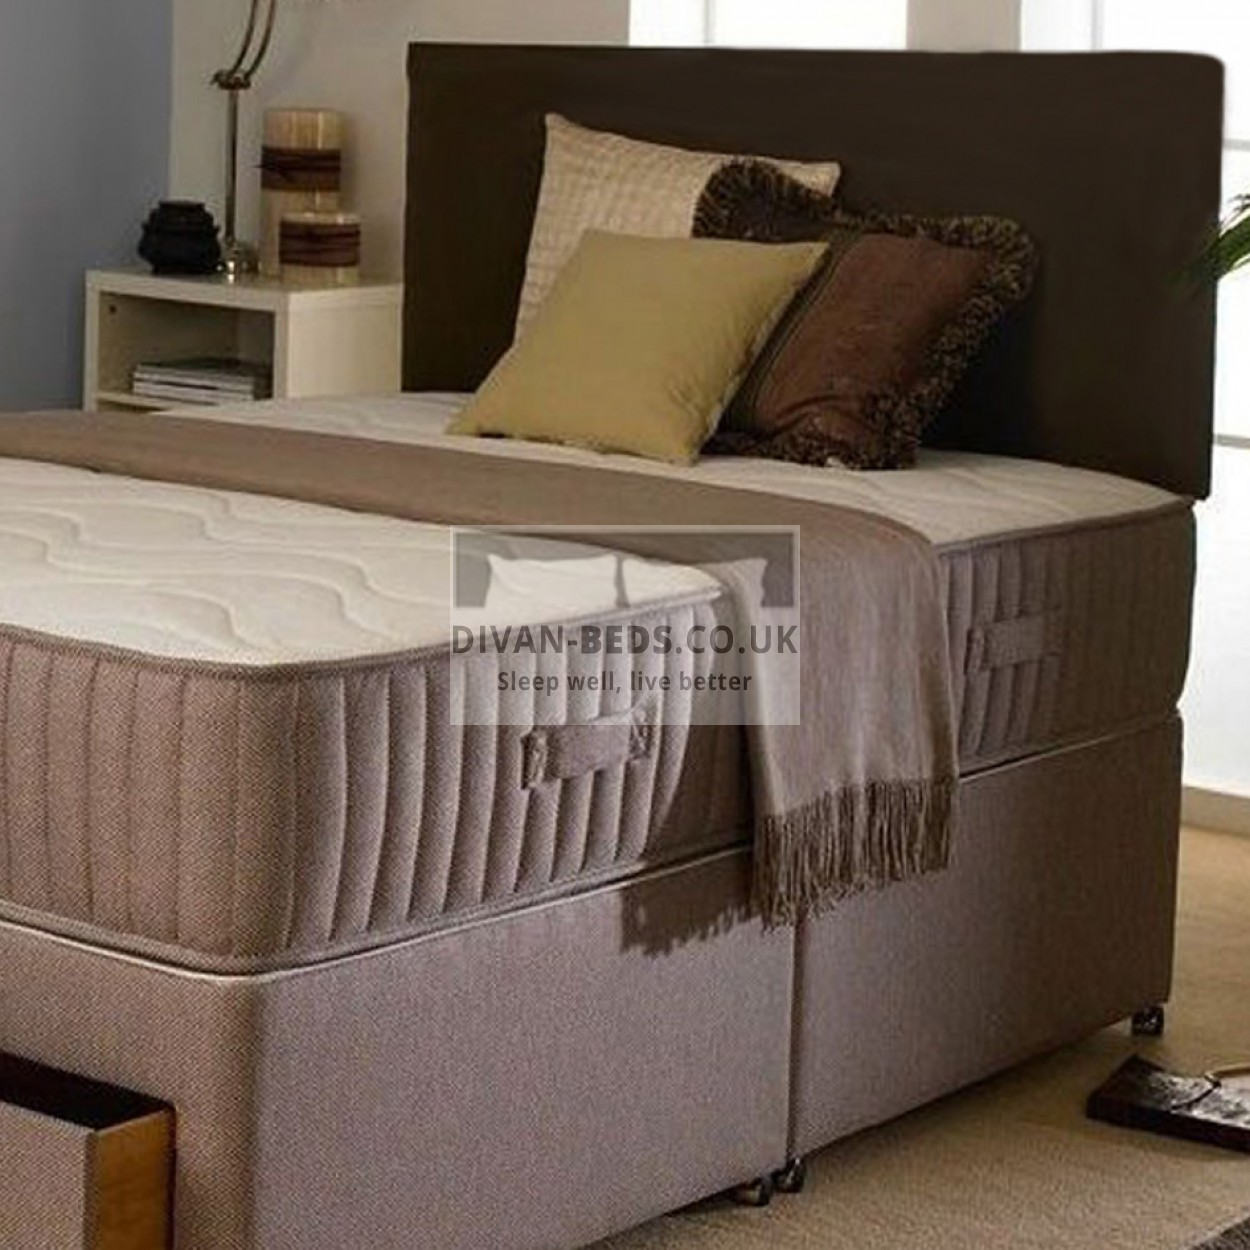 Marlo Divan Bed With Orthopaedic Spring Mattress Guaranteed Cheapest Free Fast Delivery